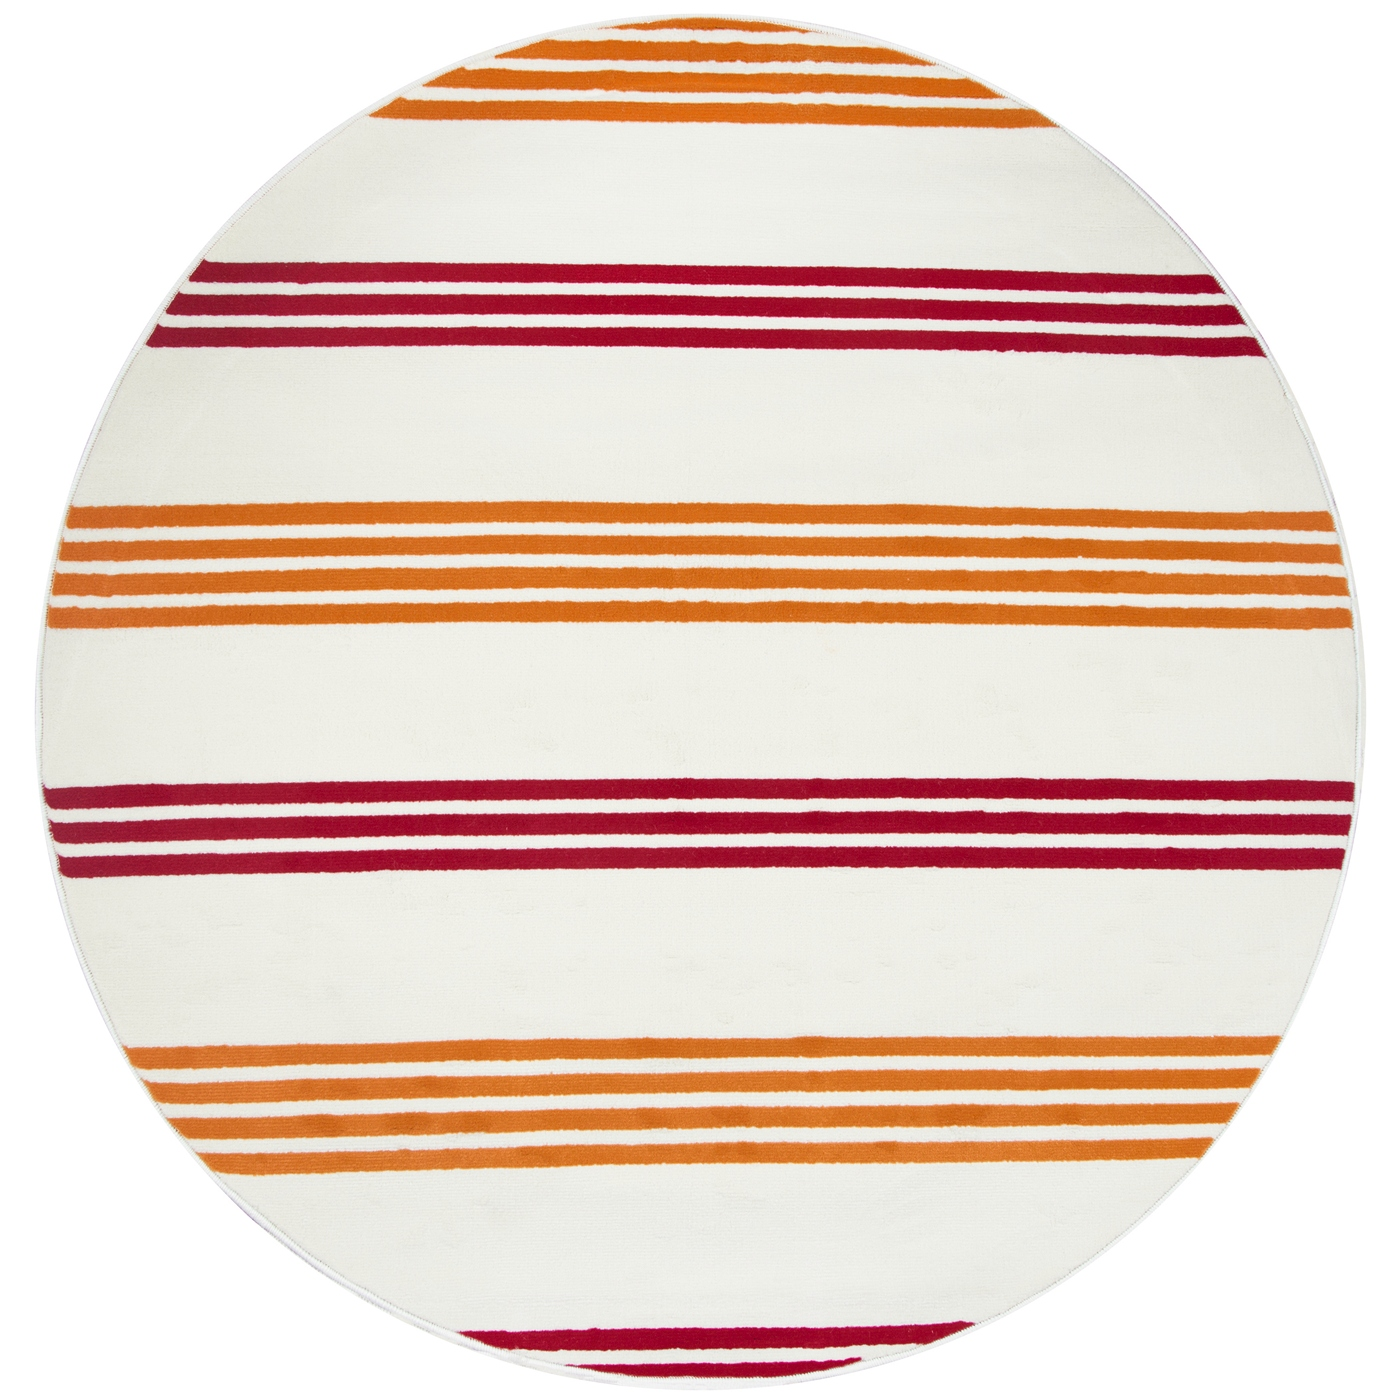 Glendale Minamalist Stripes Round Rug In Off White Red